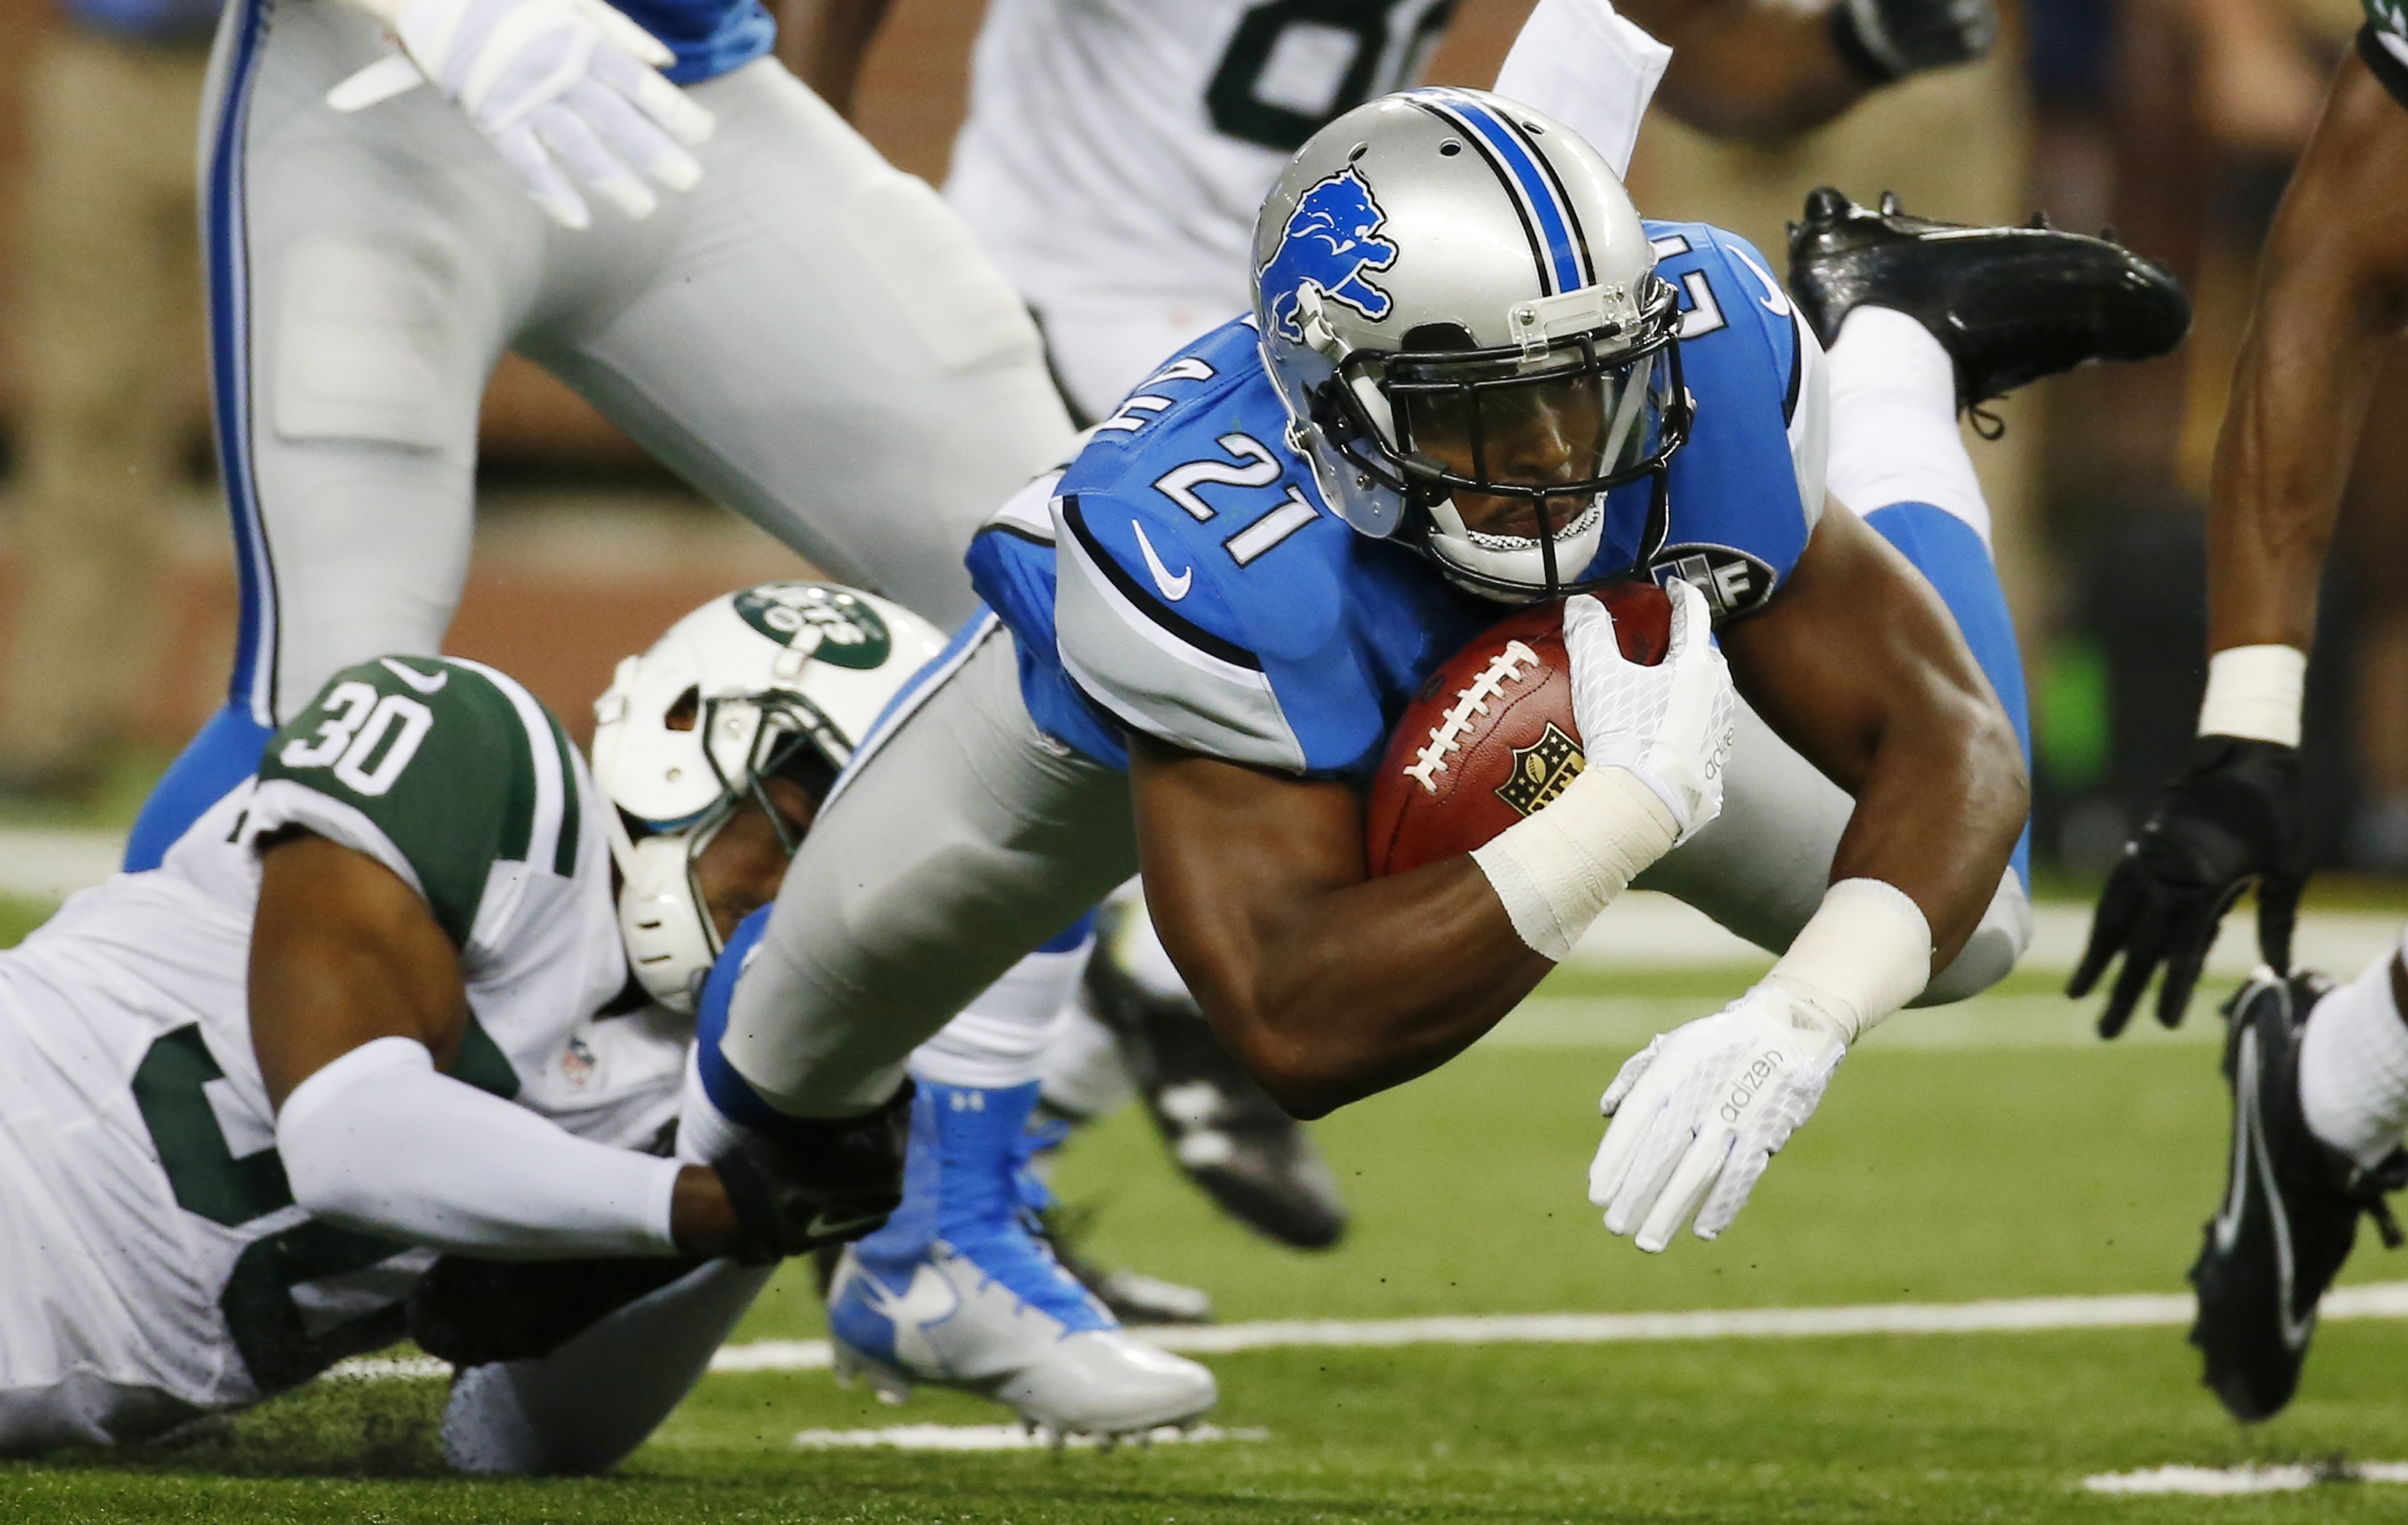 Detroit Lions running back Ameer Abdullah (21) is stopped by New York Jets cornerback Darrin Walls (30) during the first half of an NFL preseason football game, Thursday, Aug. 13, 2015, in Detroit. (AP Photo/Paul Sancya)